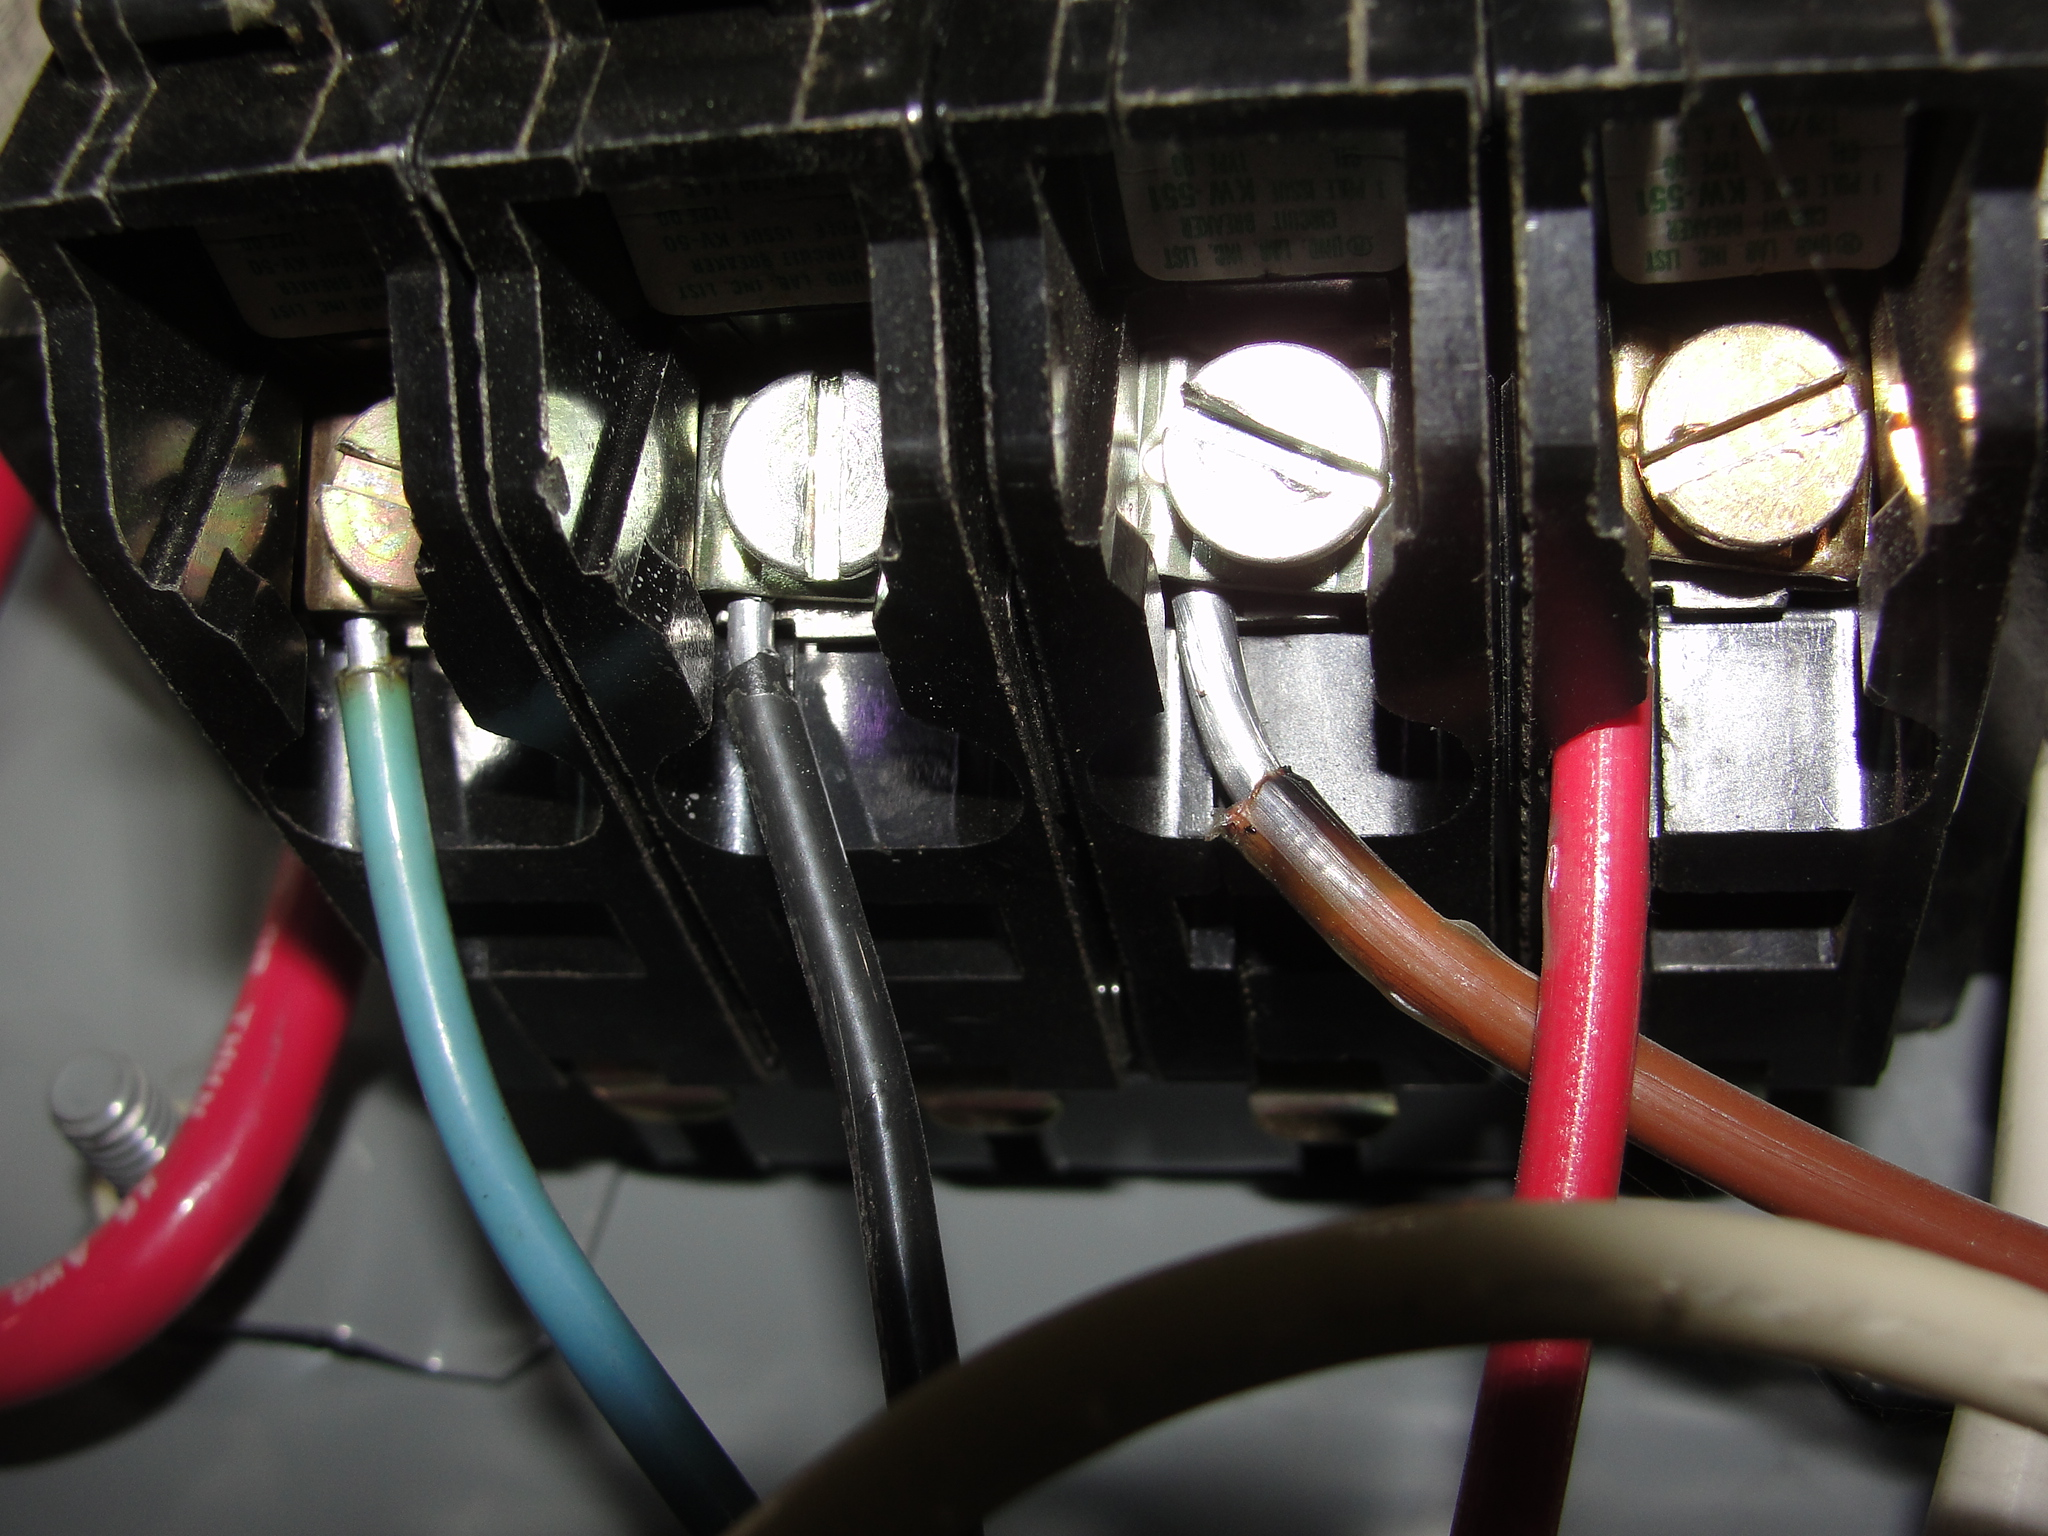 Do Condos Need Home Inspections Structure Tech How To Wiring In This Typically Cant Be Identified Without Opening Up The Electrical Panel More On That Topic Here Aluminum